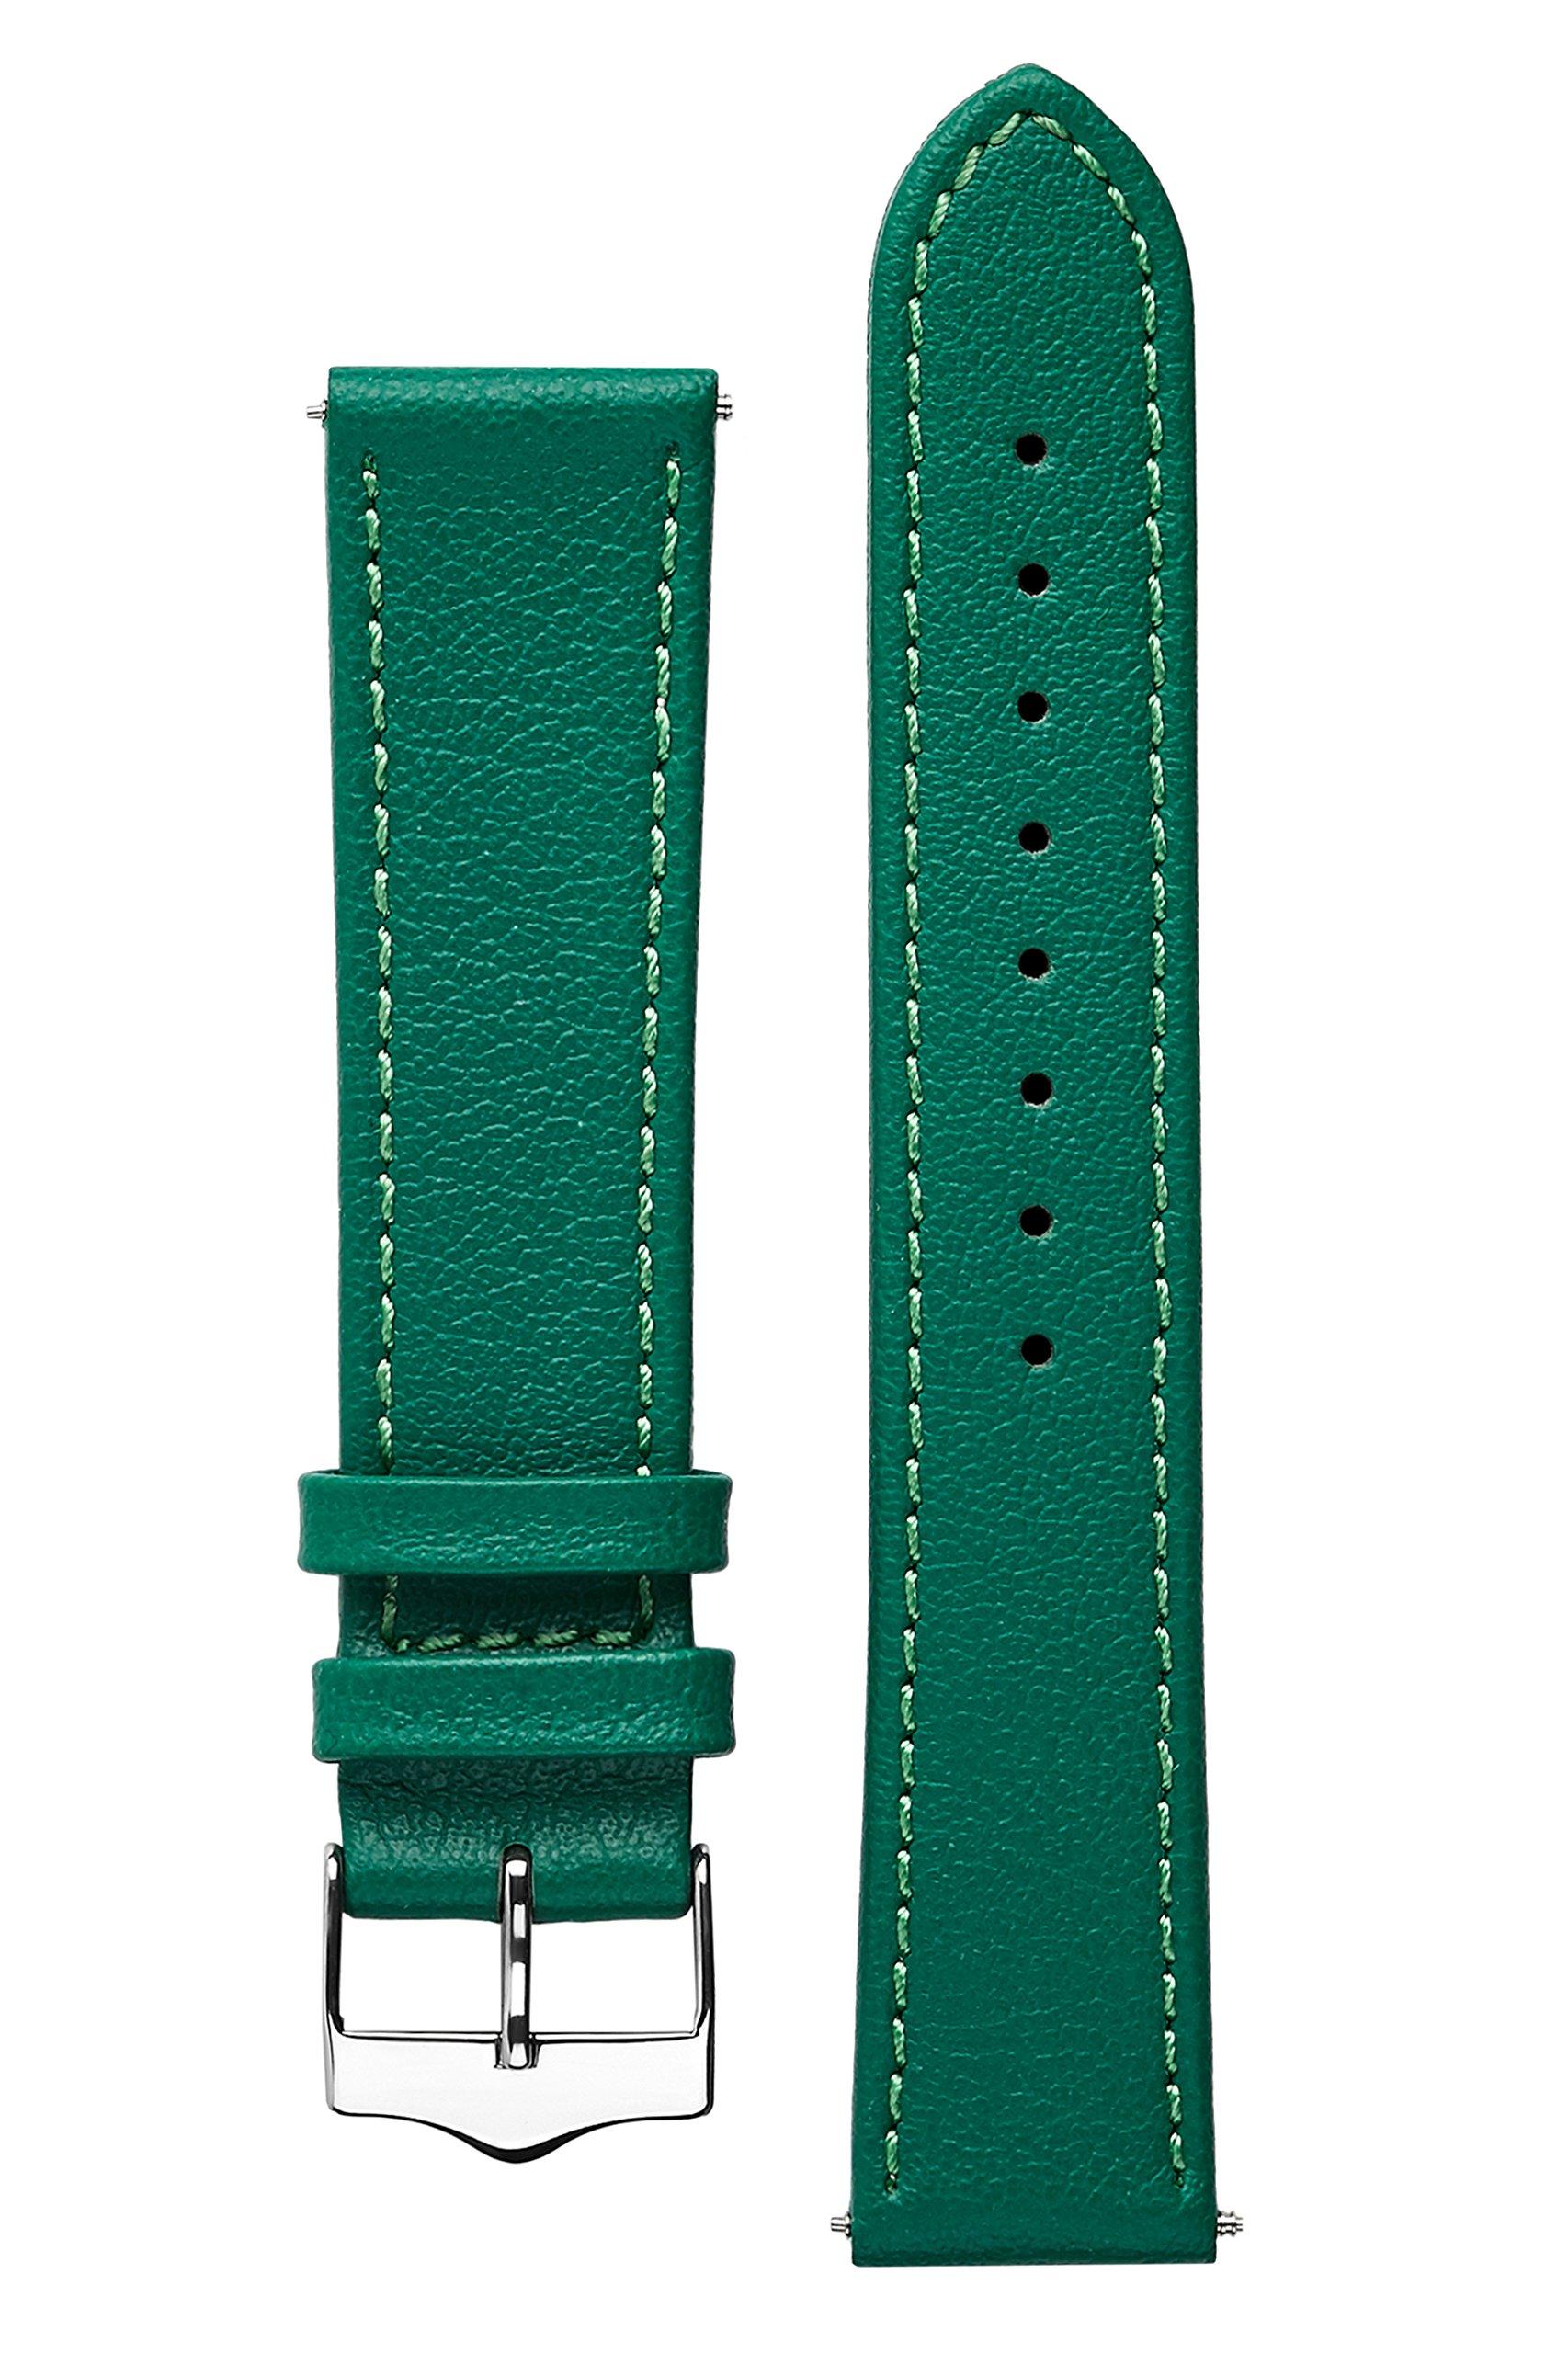 Signature Seasons in green 20 mm short watch band. Replacement watch strap. Genuine leather. Steel Buckle